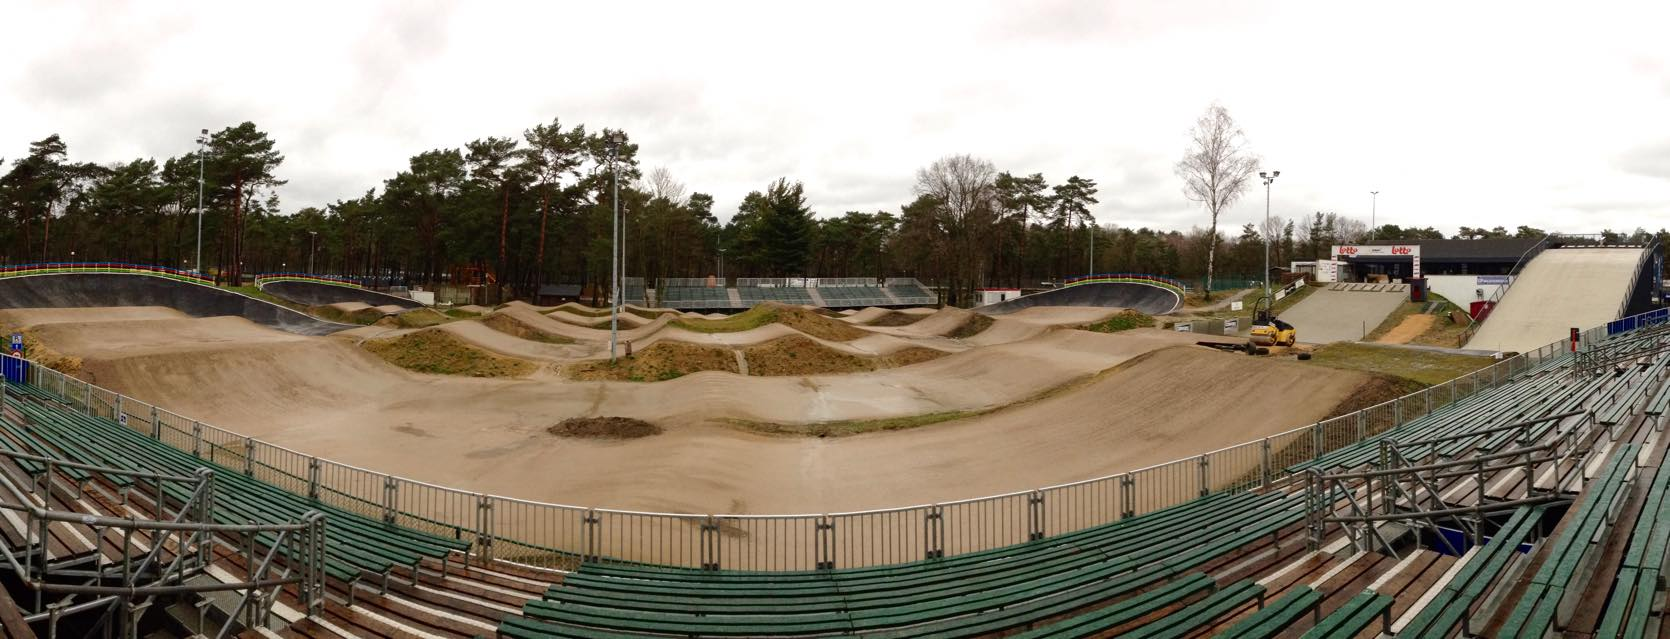 UEC BMX EK Zolder Boys 8 years and under